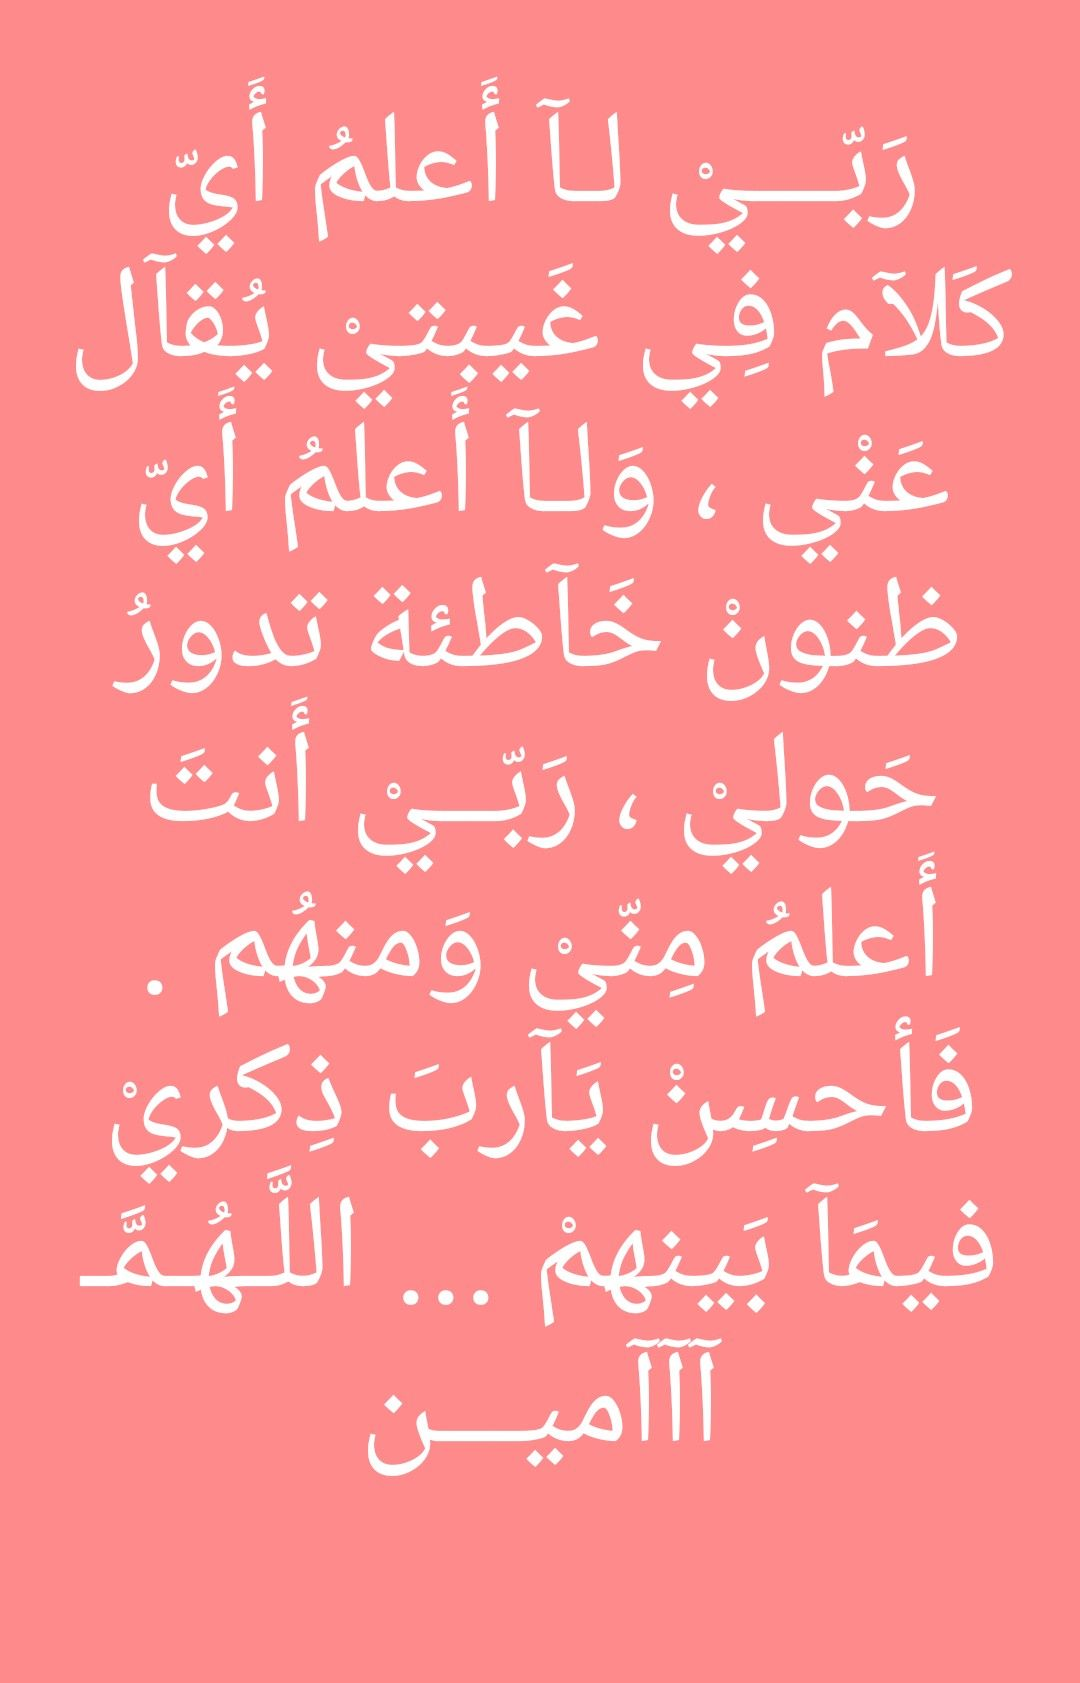 Pin by Kirkuk on Arabic quotes | Arabic funny, Arabic quotes